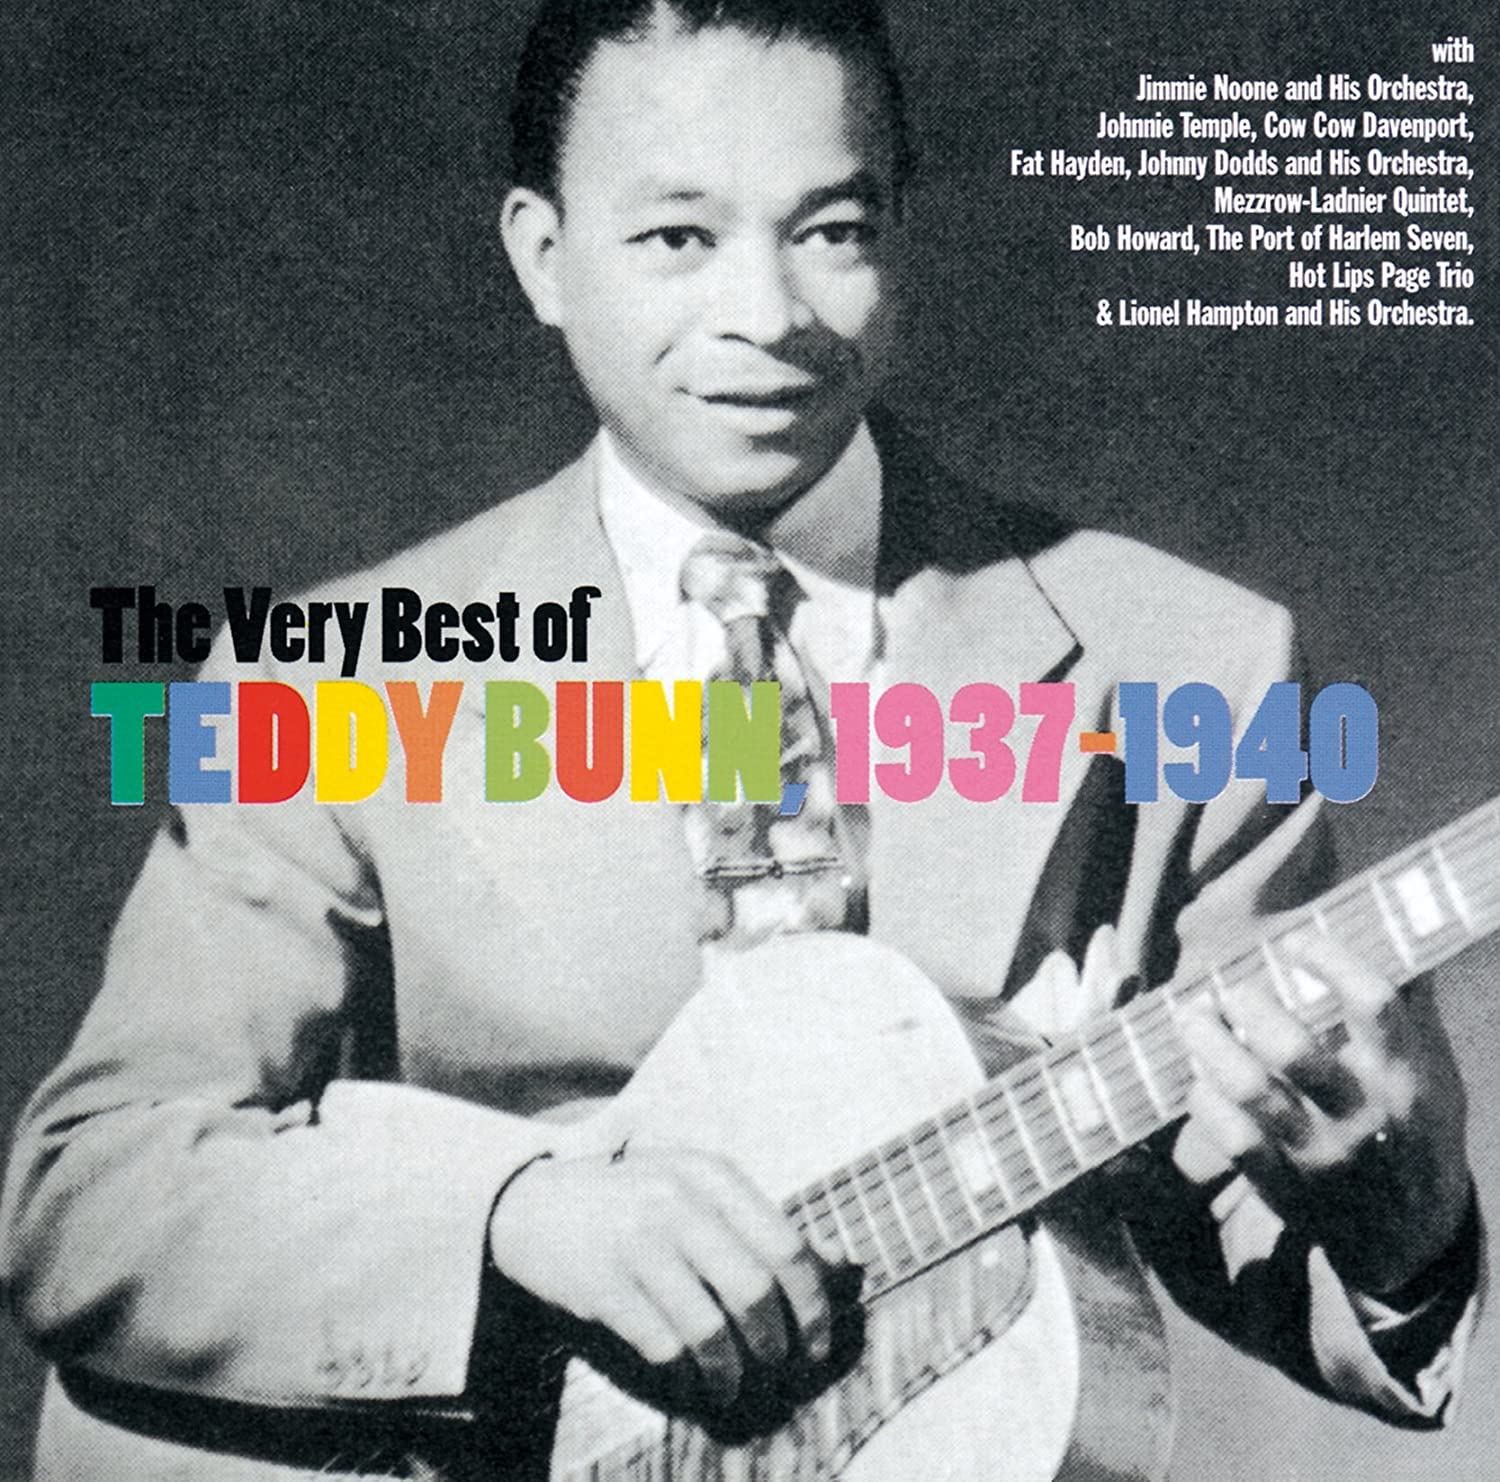 The Very Best Of Teddy Bunn.1937-1940